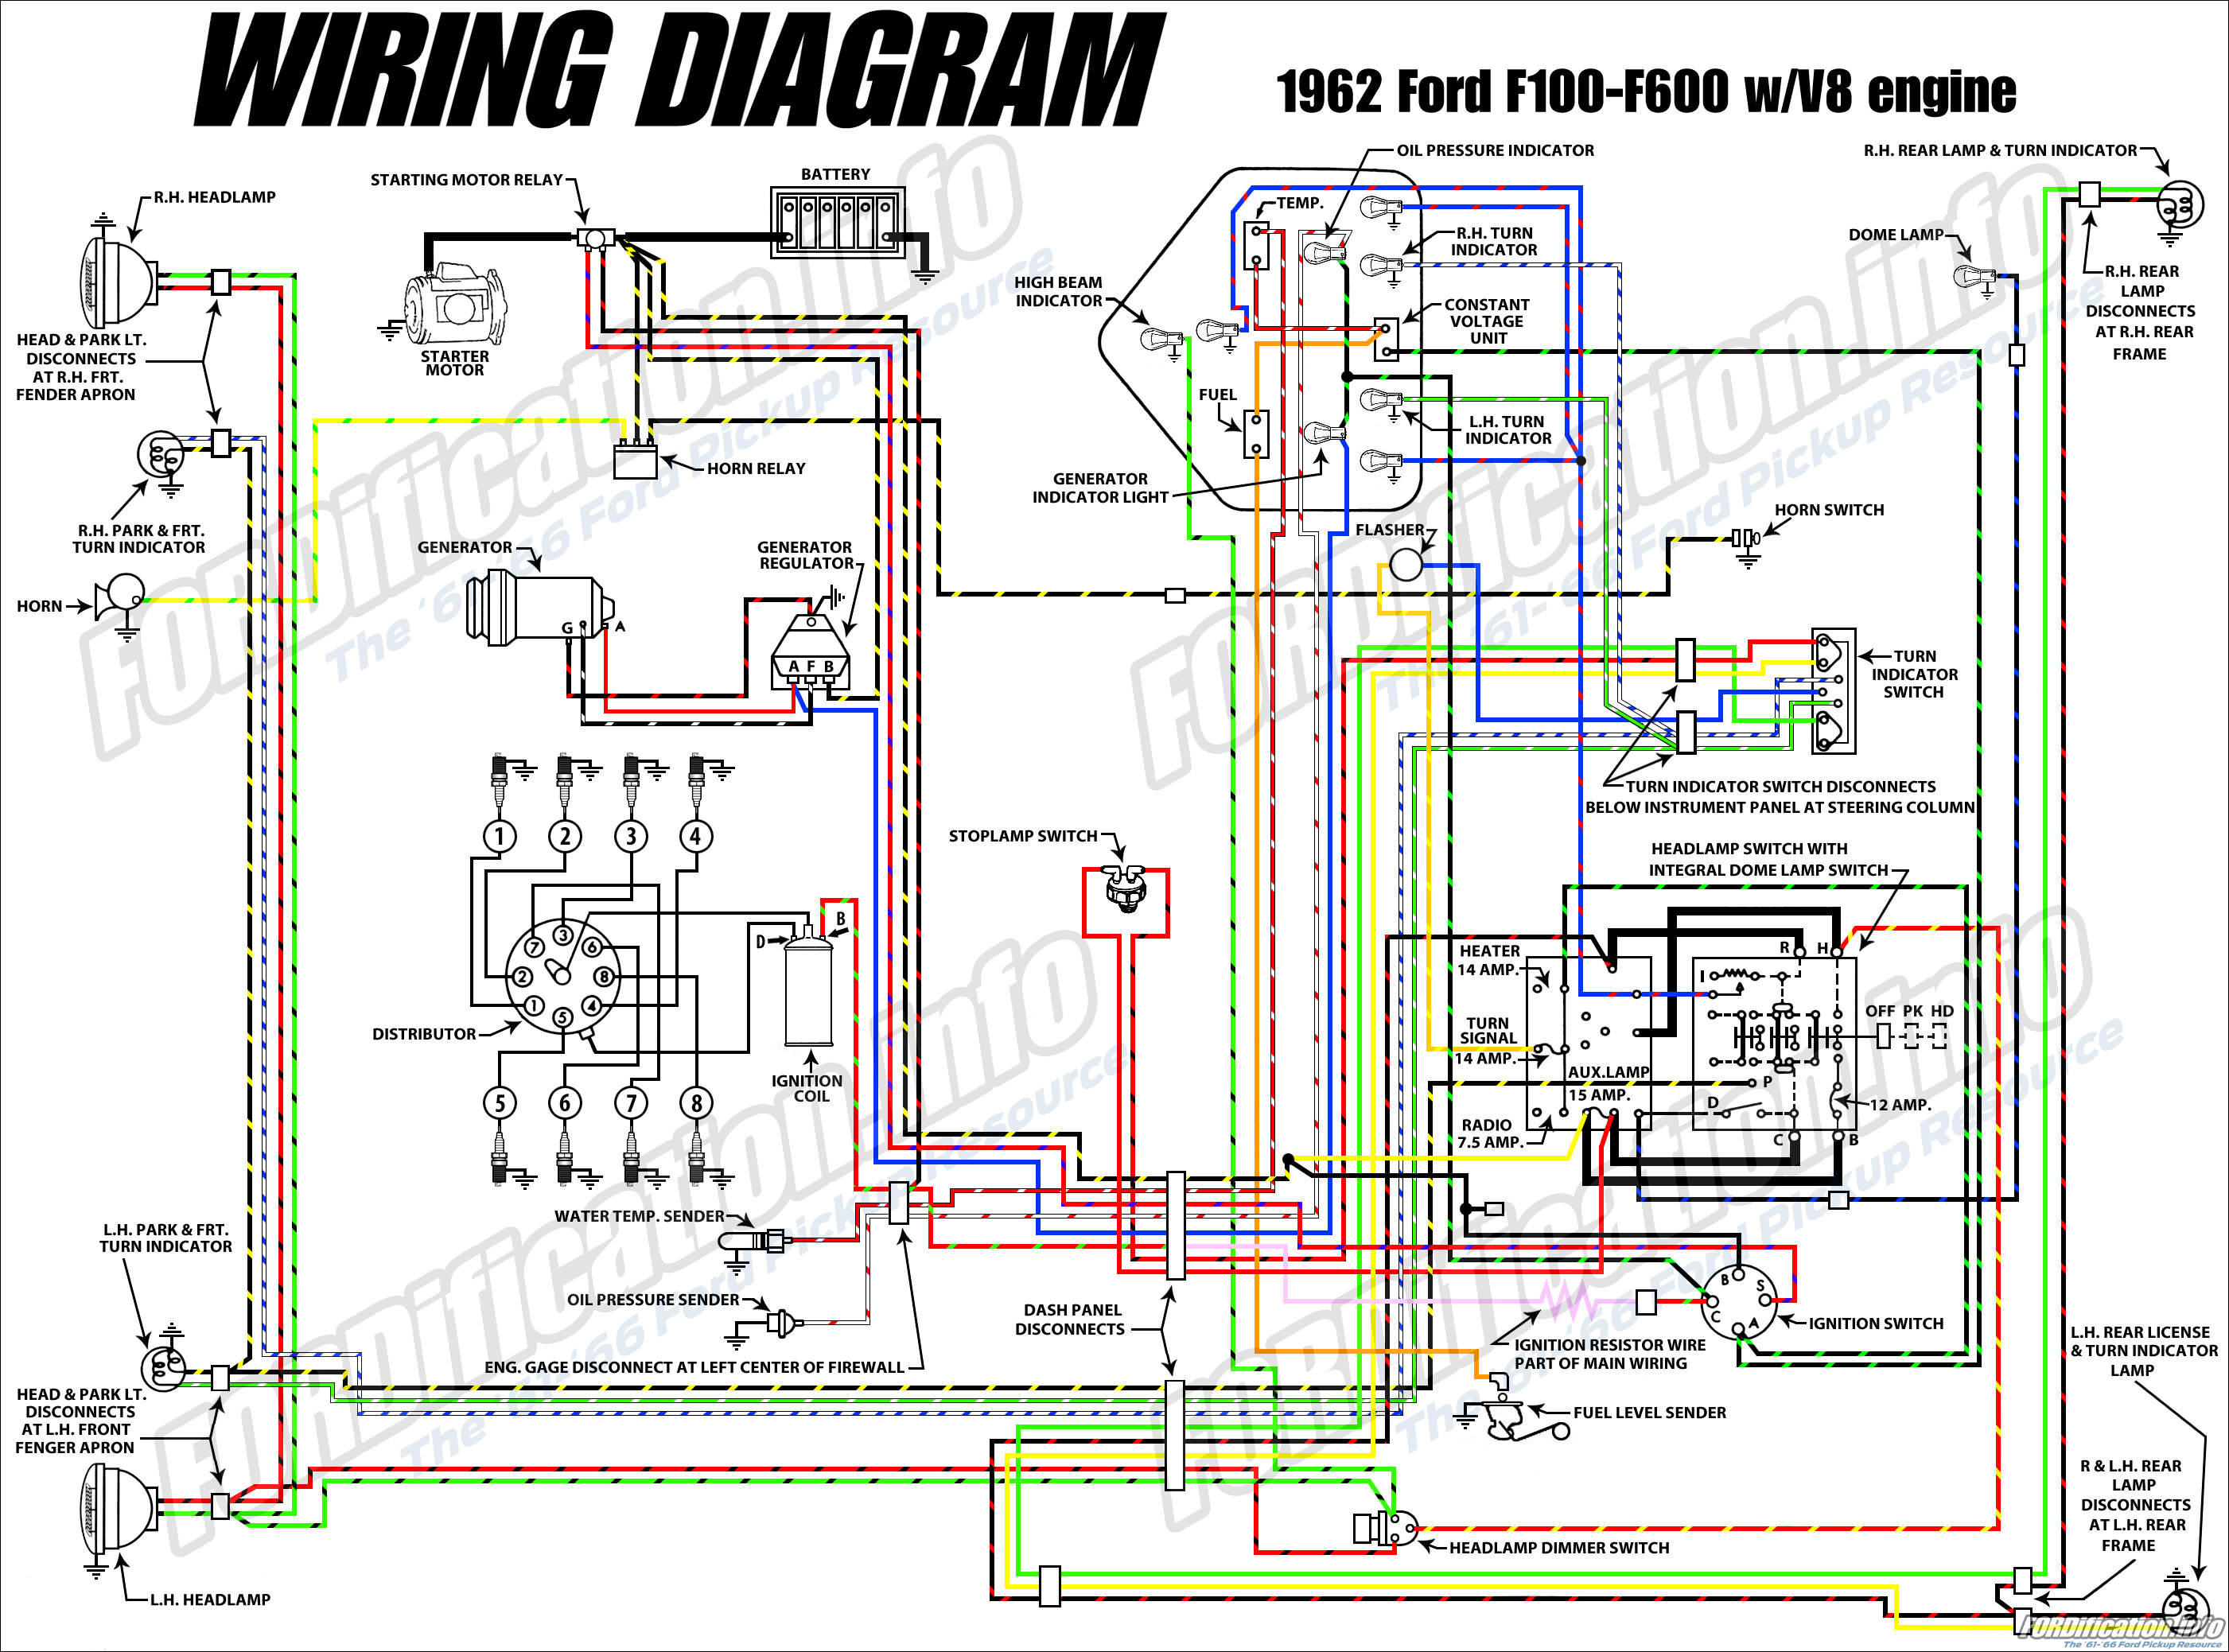 1963 ford f100 wiring diagram stewart warner gauges diagrams 1962 truck fordification info the